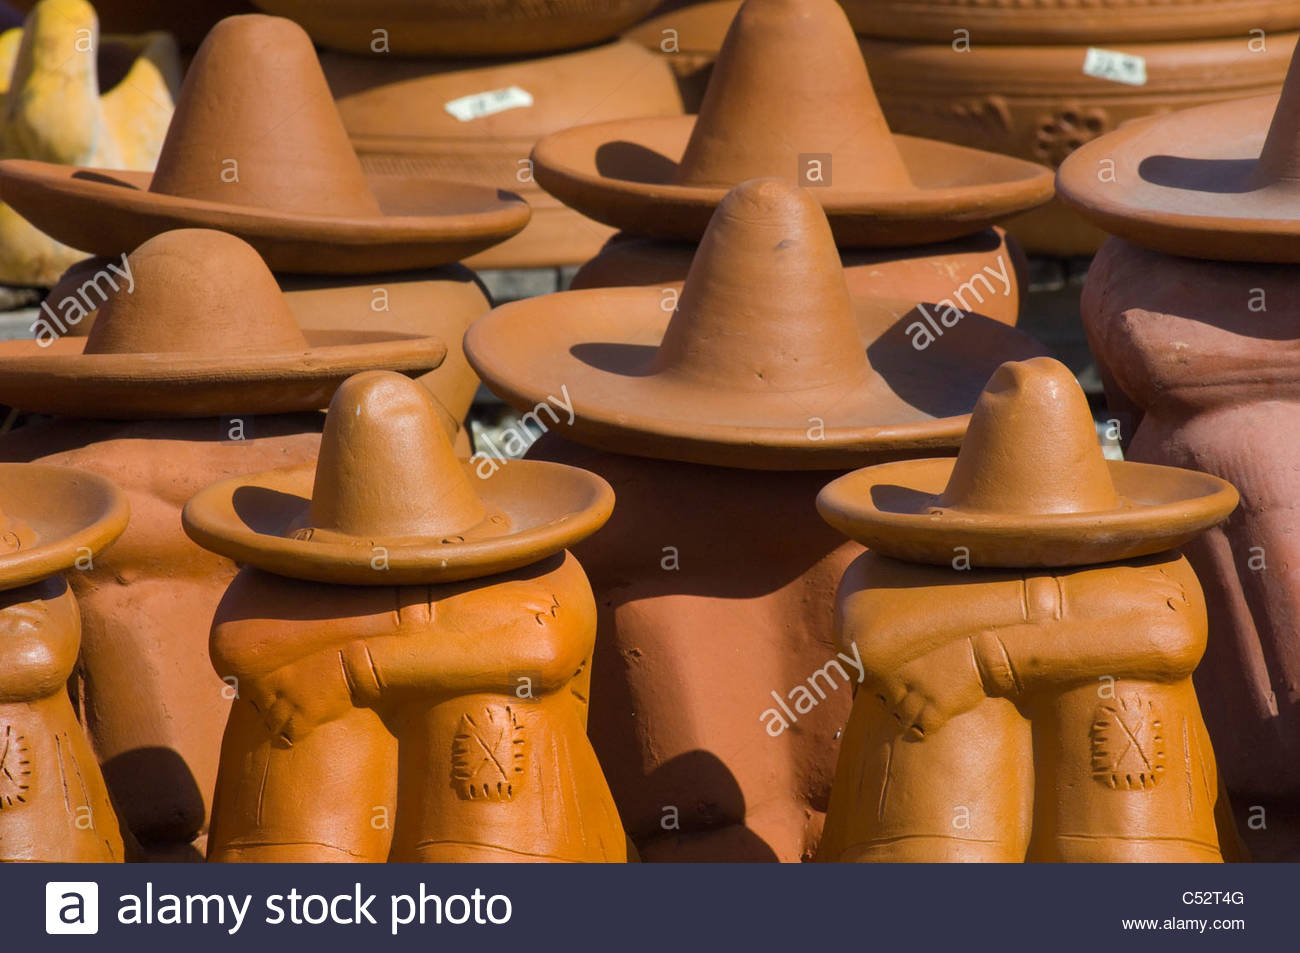 Imported Pottery - Stock Image